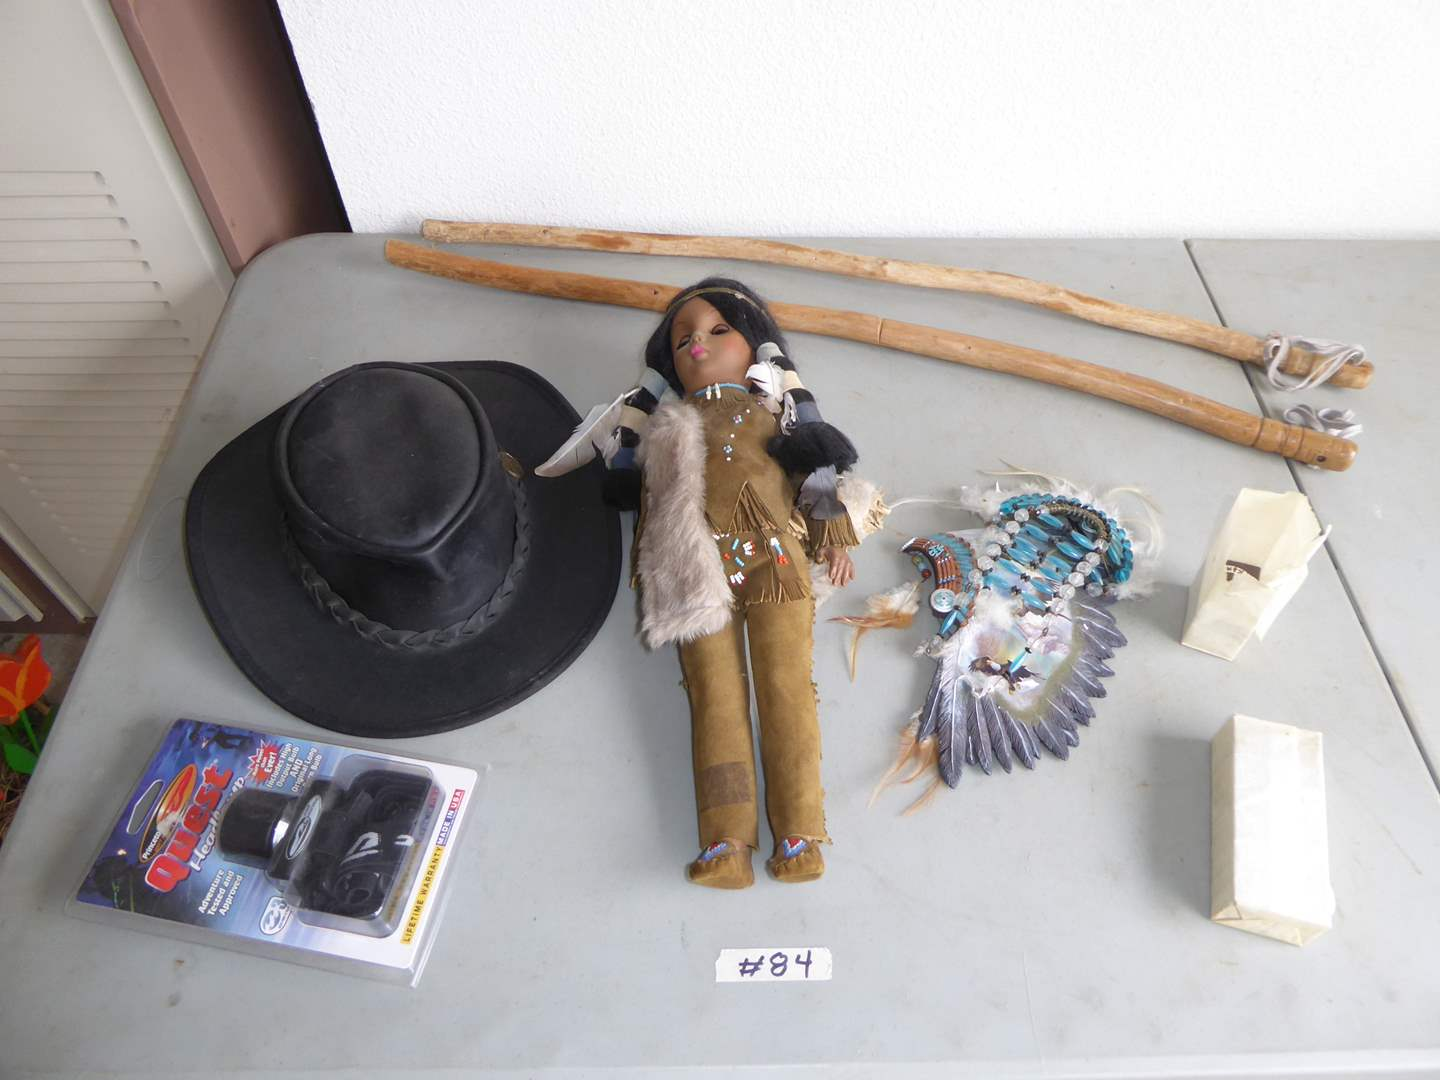 Lot # 84 - Soaring Spirits By Ted Blaylock, Native American Doll & More (main image)